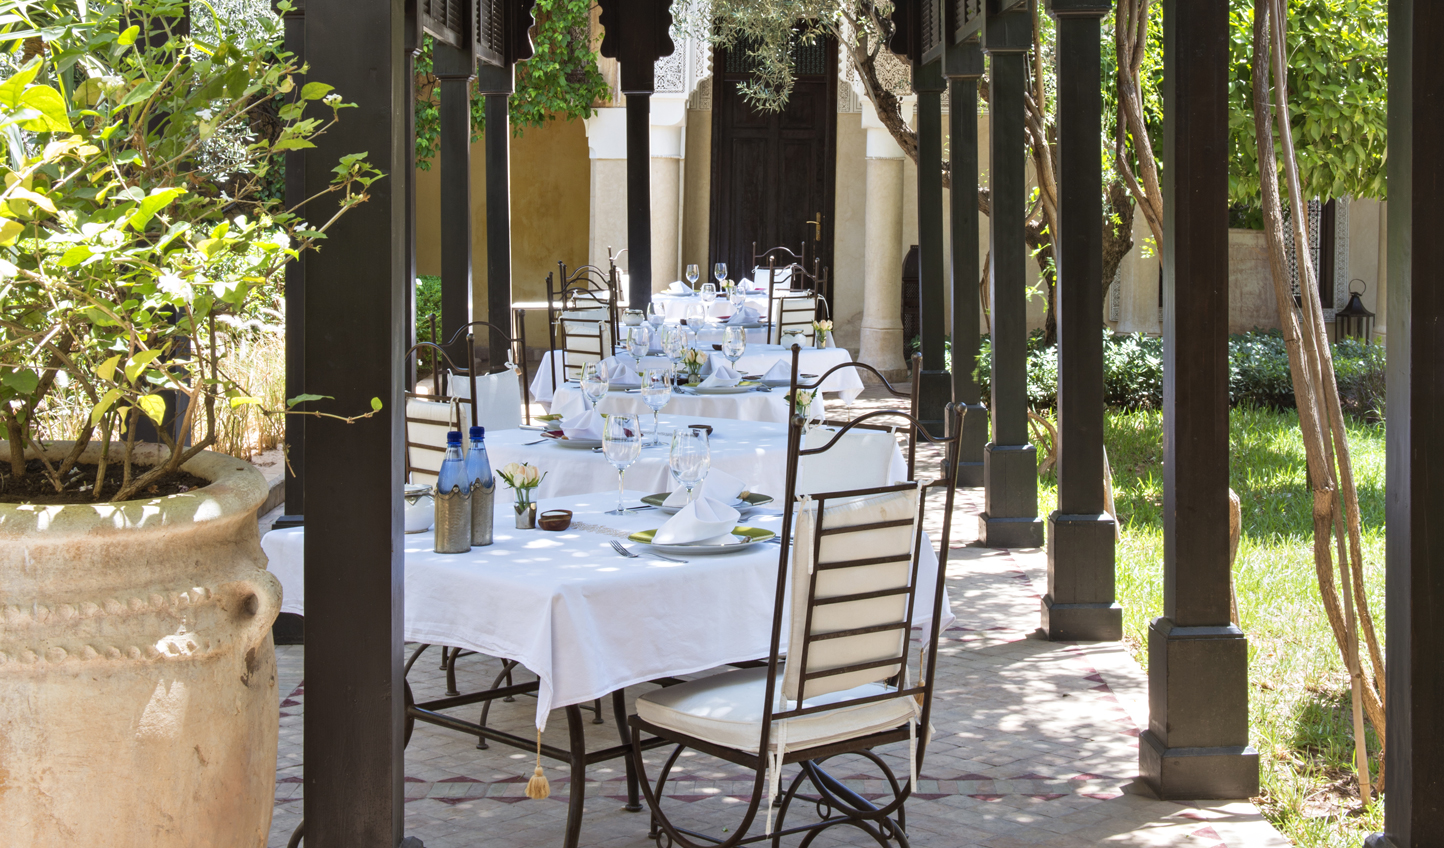 Start the day with breakfast beneath the pergola